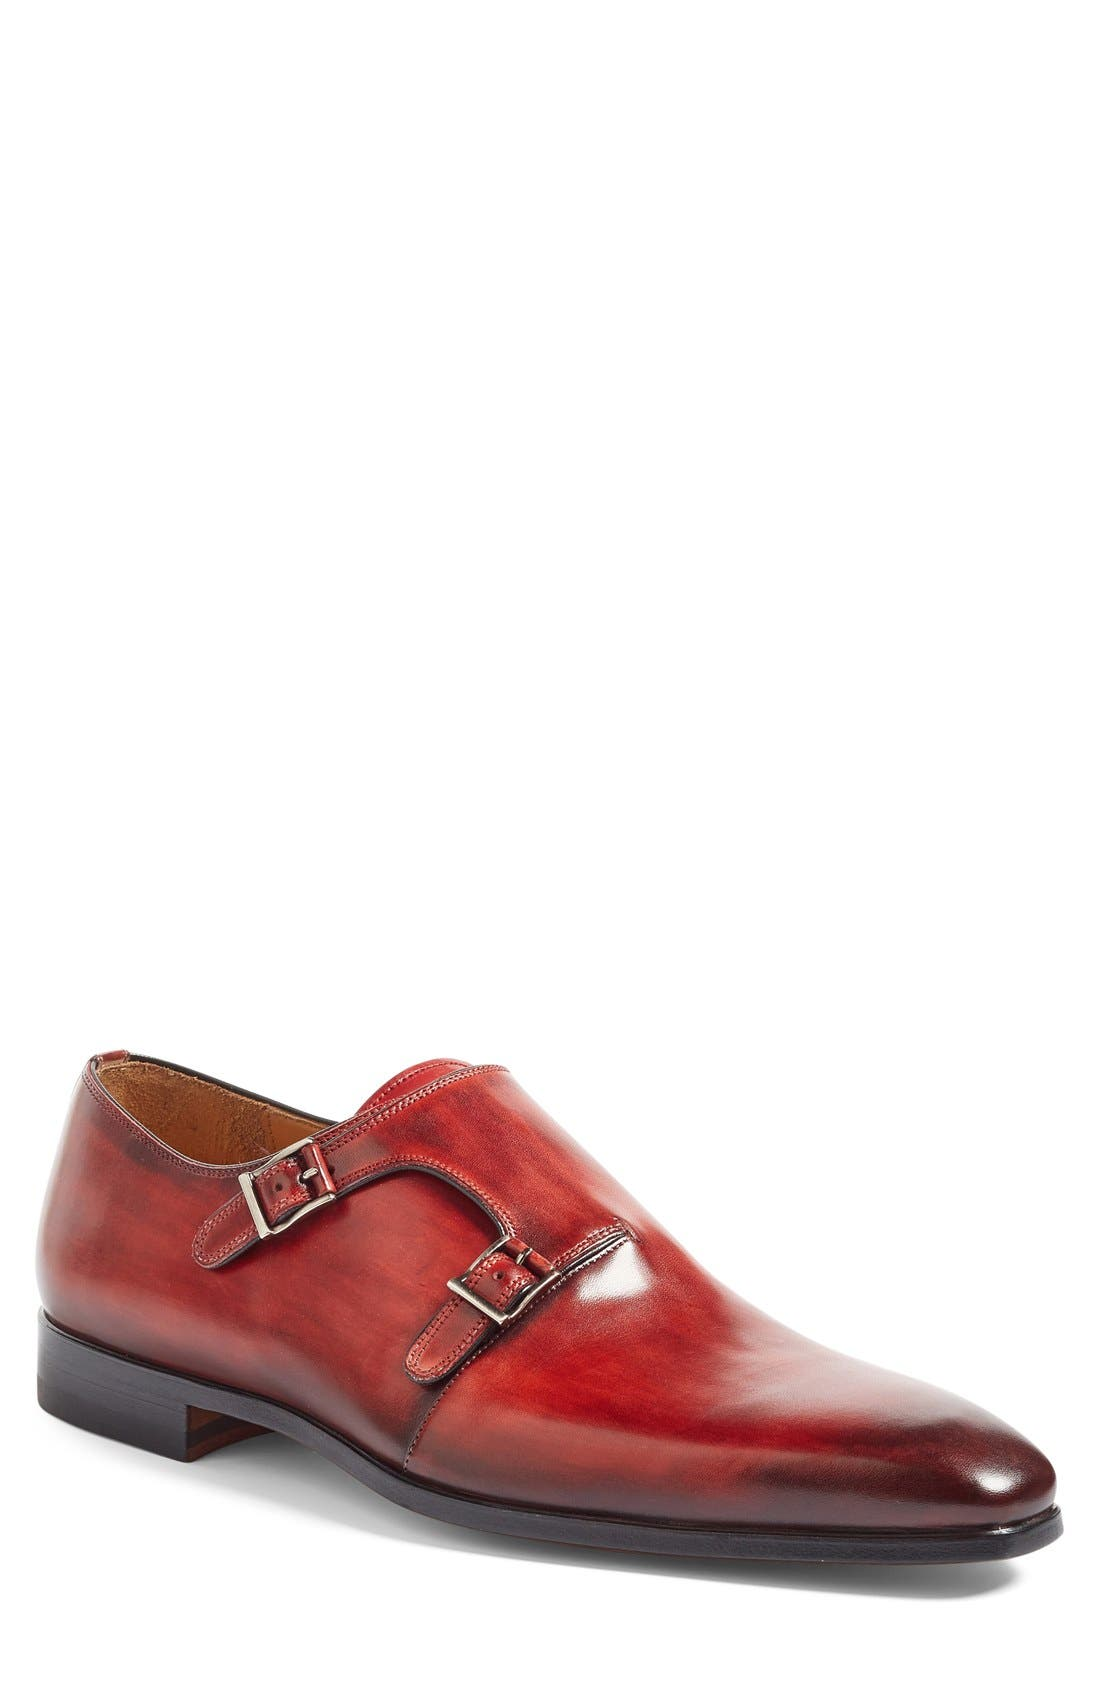 Jamin Double Monk Strap Shoe,                             Main thumbnail 1, color,                             Red Leather